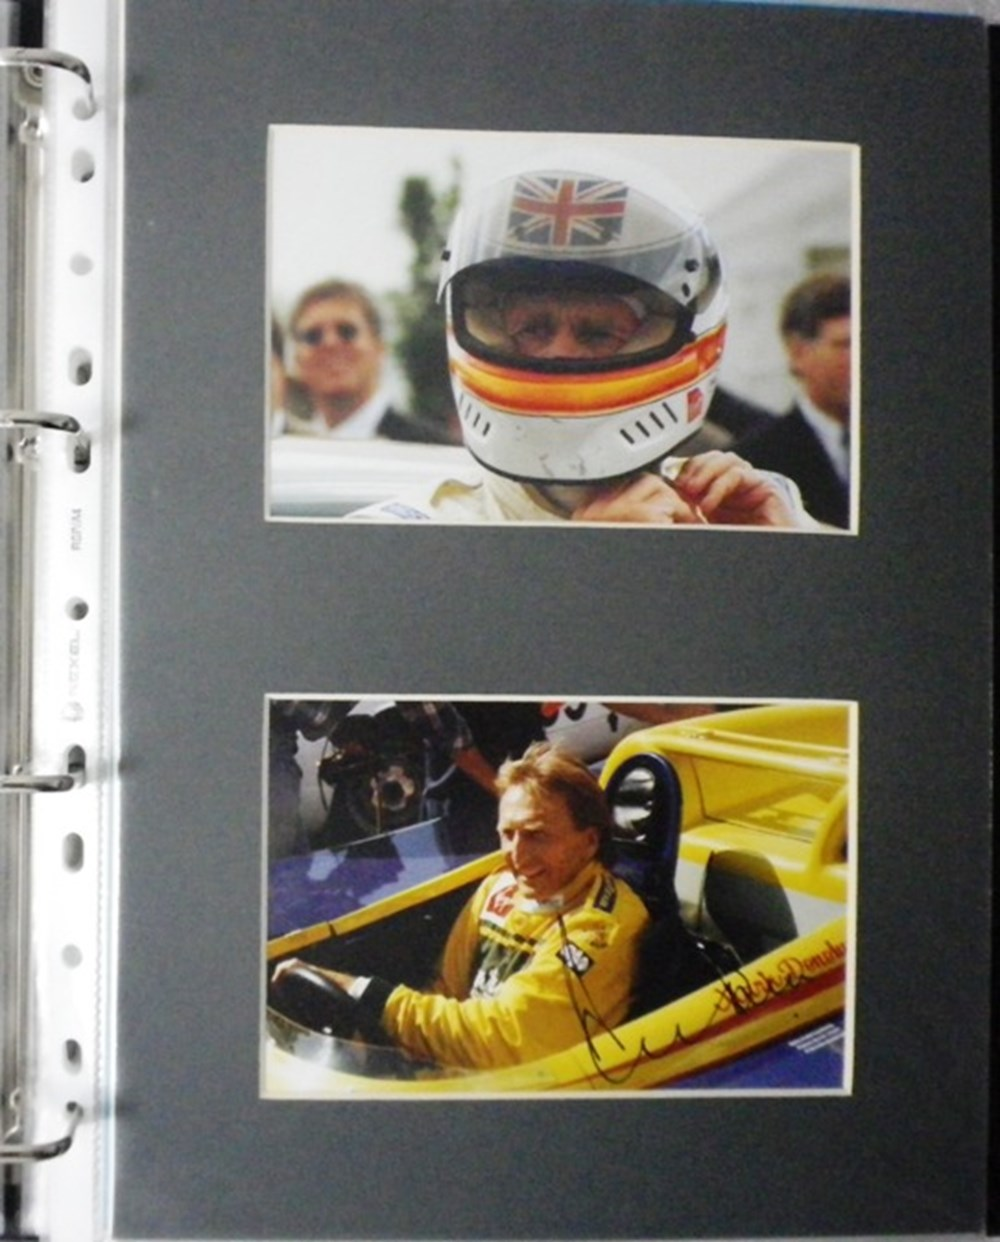 Lot 77 - Signed photos of racing drivers